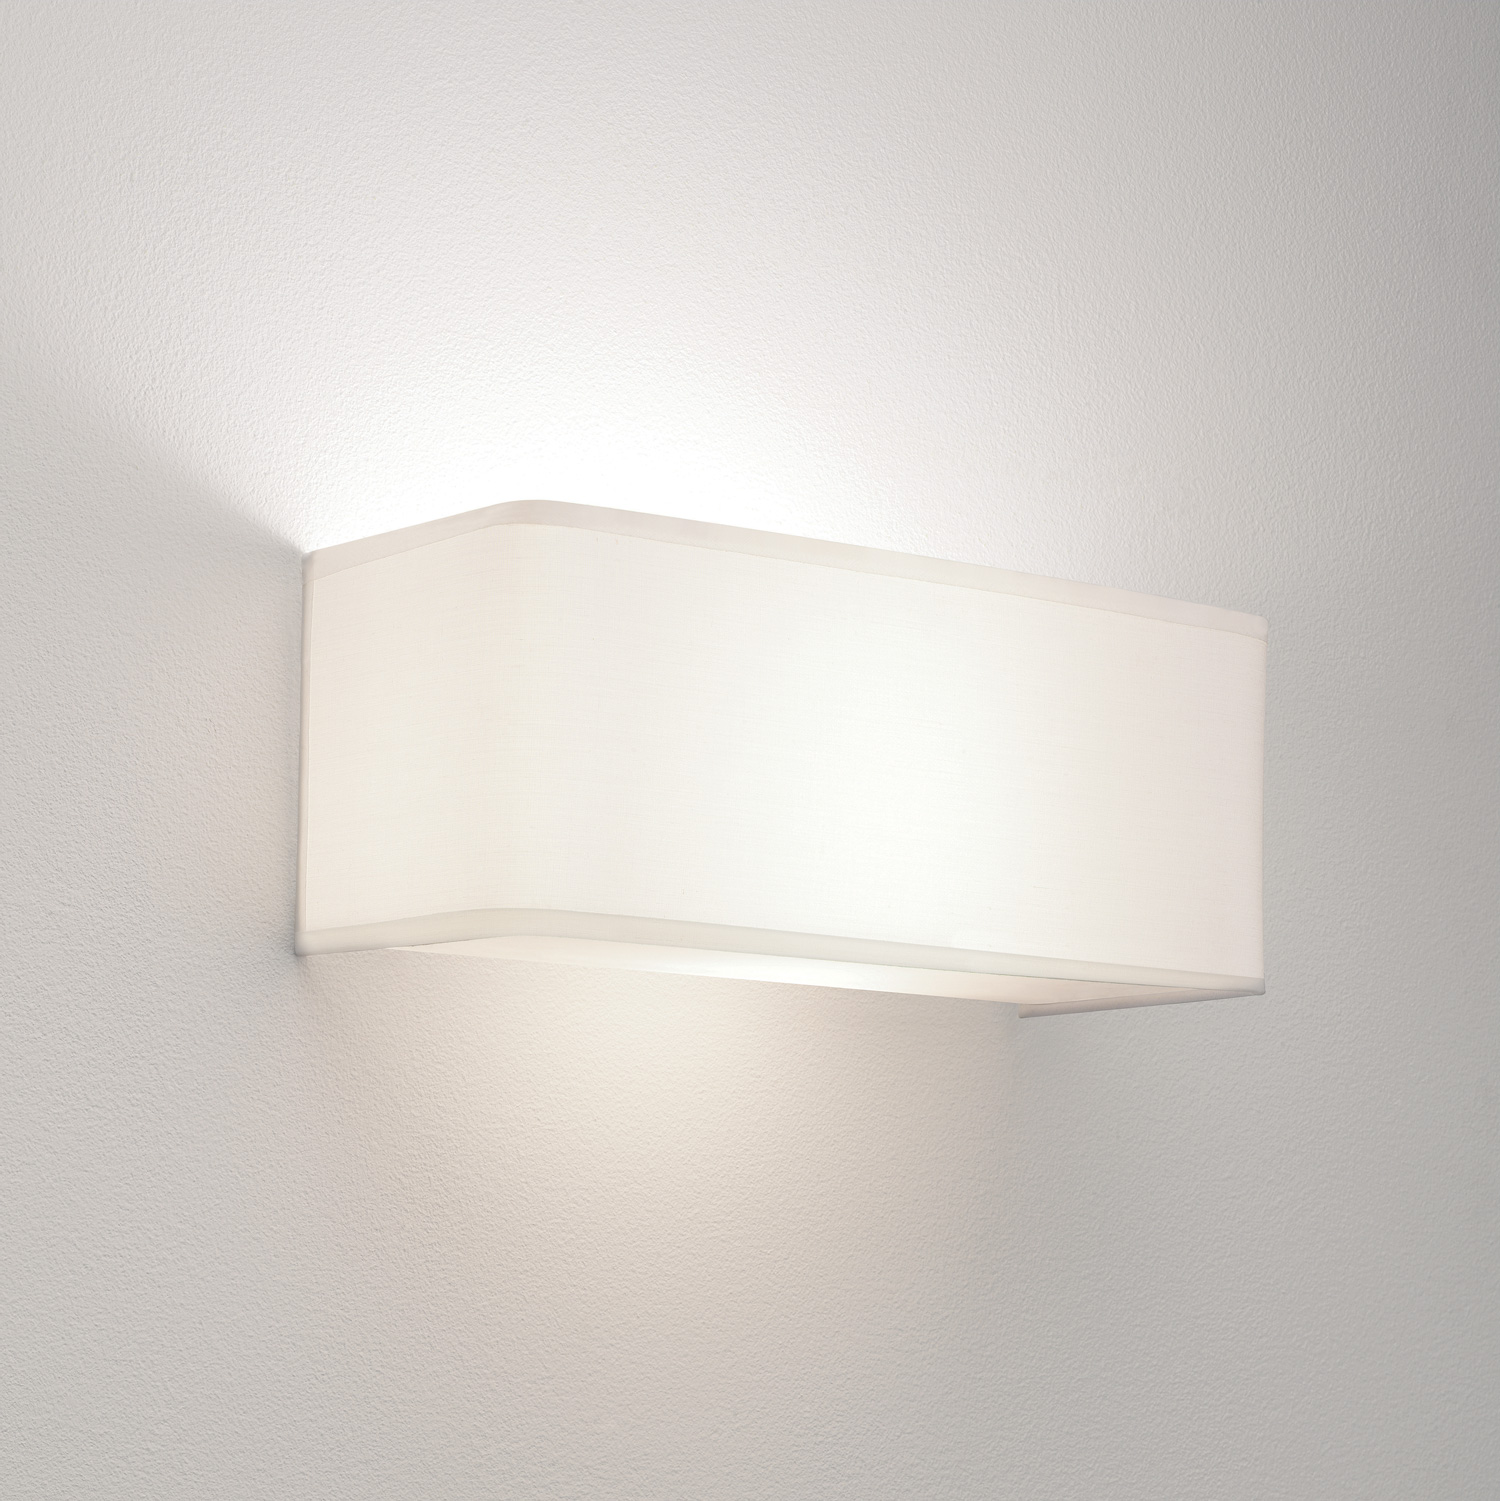 White Dimmable Wall Lights : Astro Ashino Wide 0767 dimmable rectangular fabric wall light 60W E27 lamp IP20 eBay